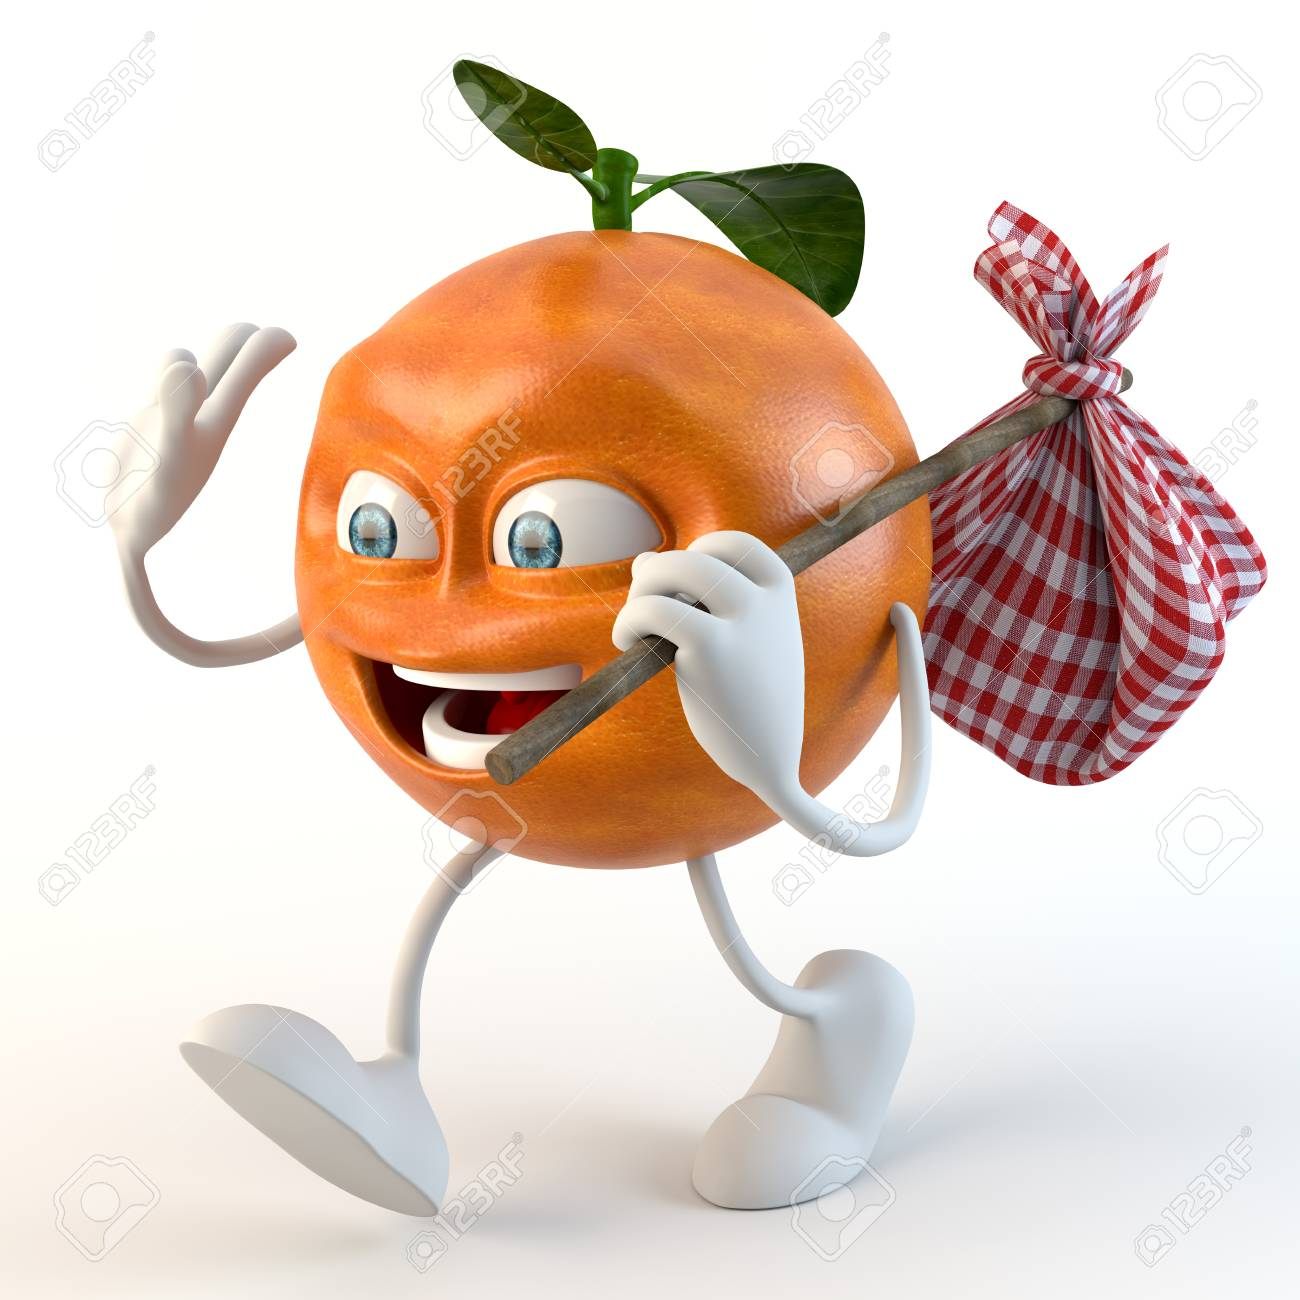 f443f7c68 Funny 3d Fruit Character With Bindle Stock Photo, Picture And ...